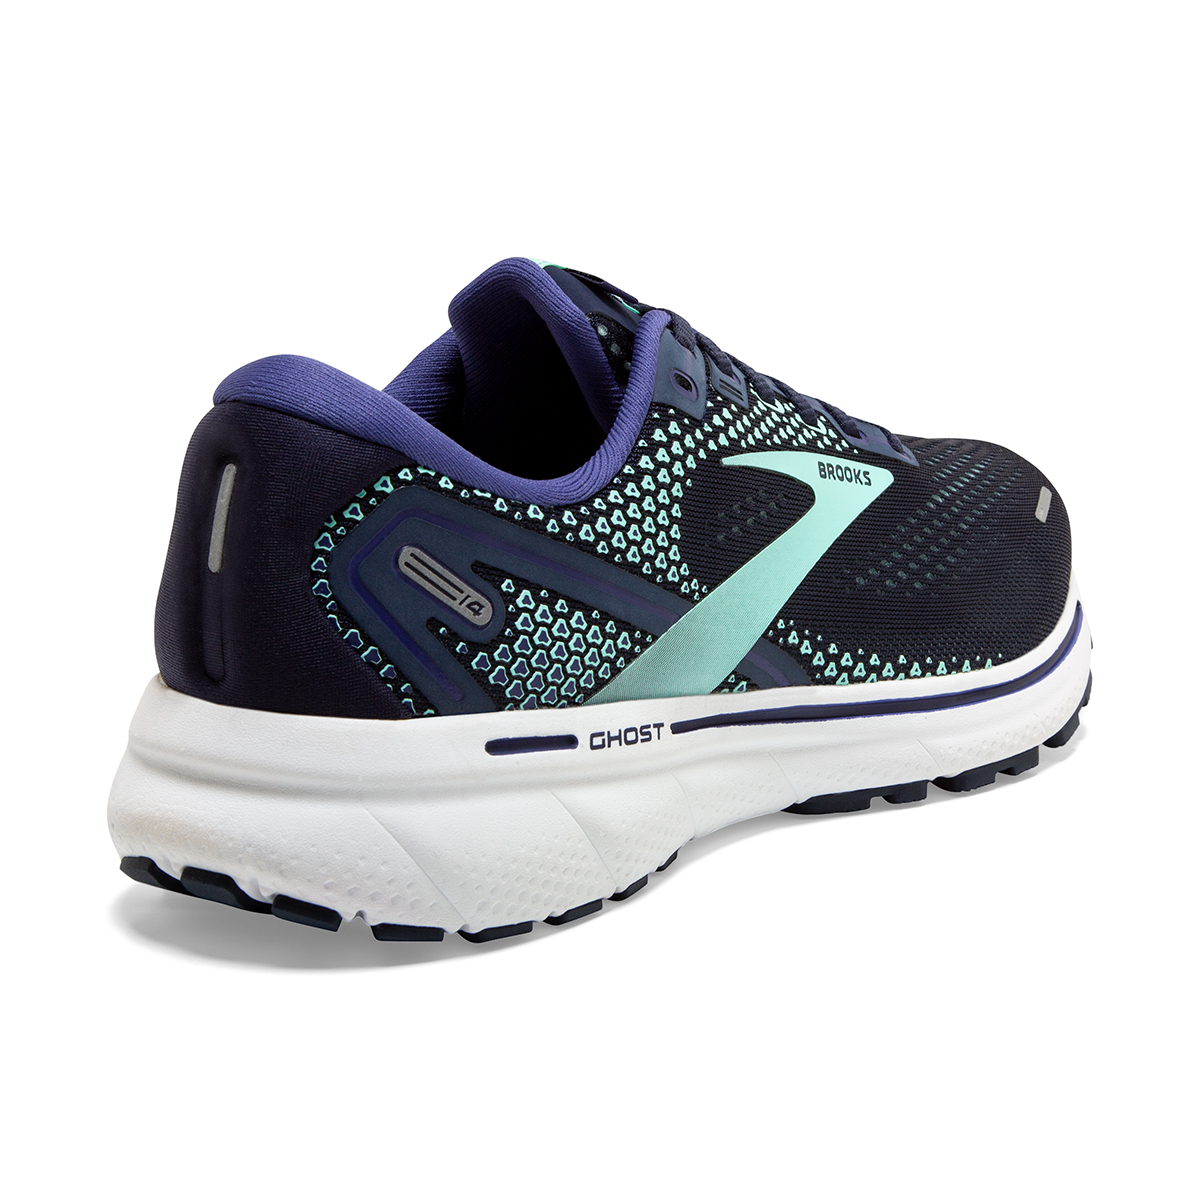 Women's Brooks Ghost 14 Running Shoe - Color: Peacoat/Yucca - Size: 5 - Width: Regular, Peacoat/Yucca, large, image 6